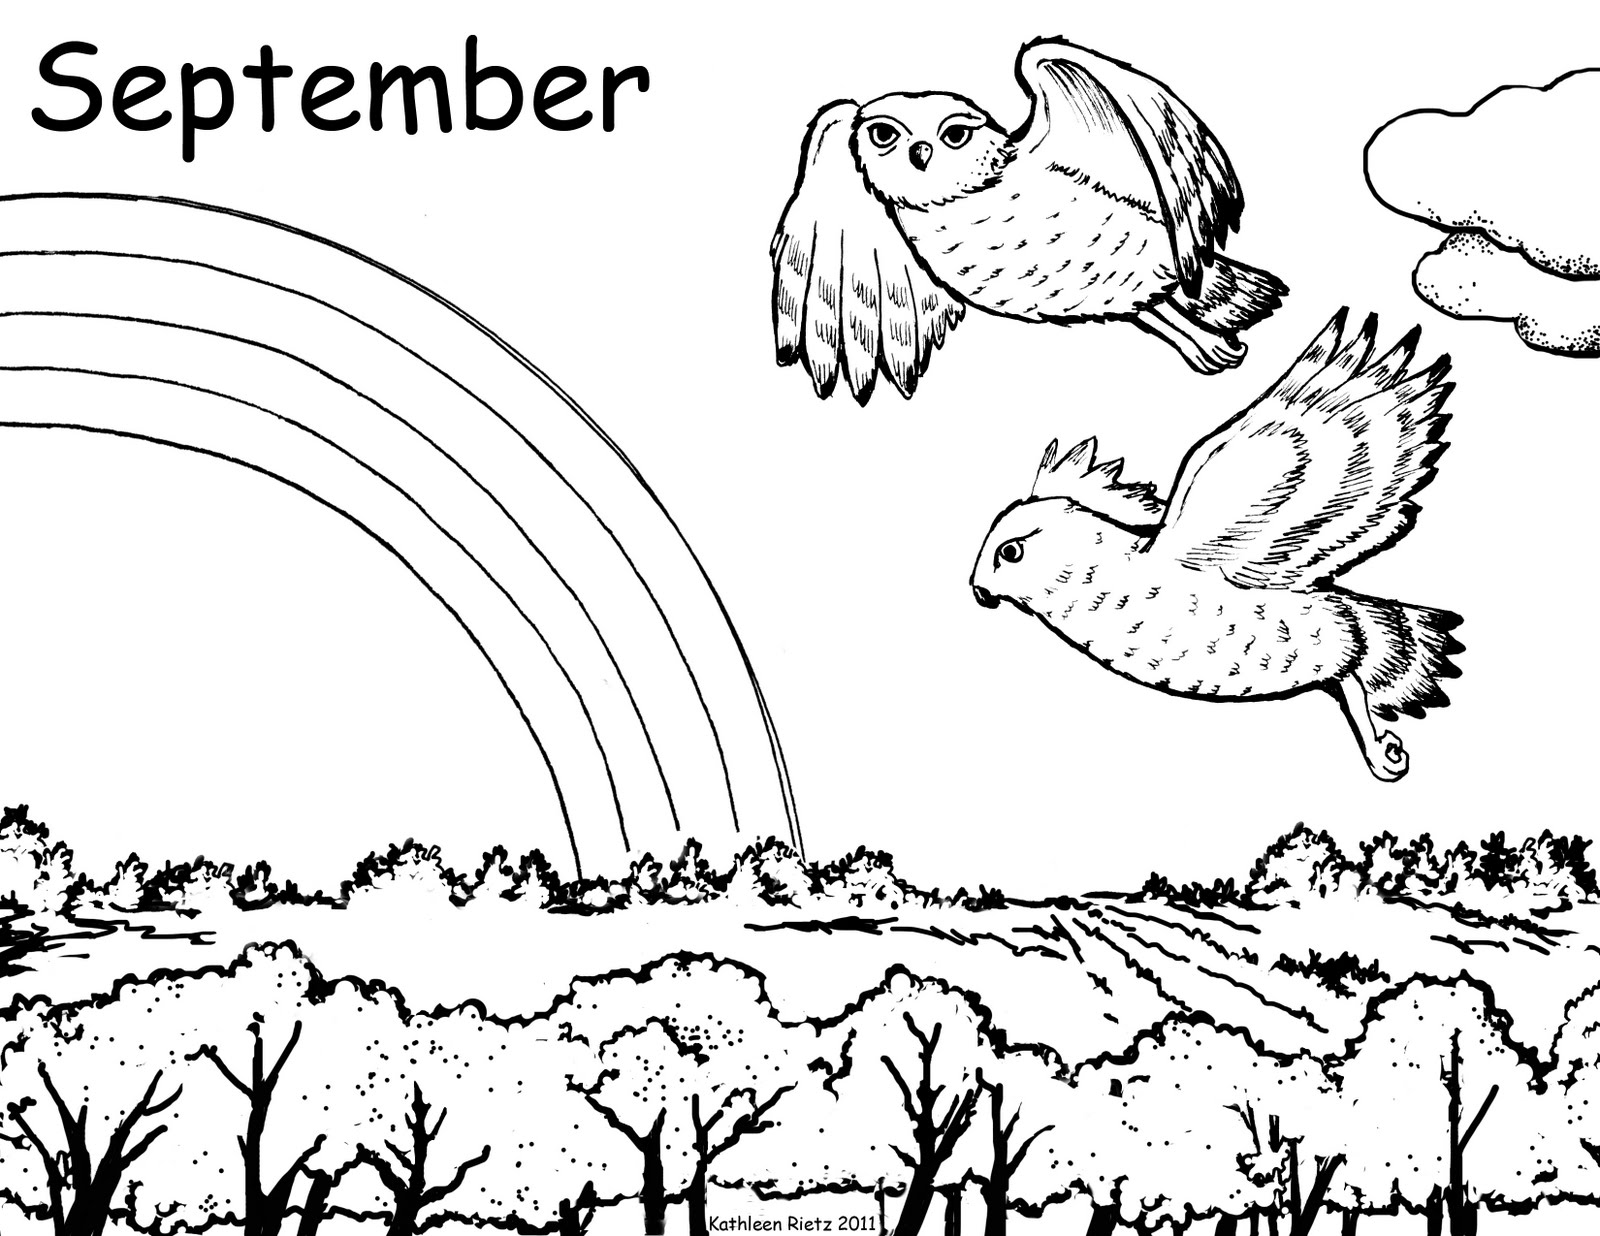 september 16 activities coloring pages - photo#37